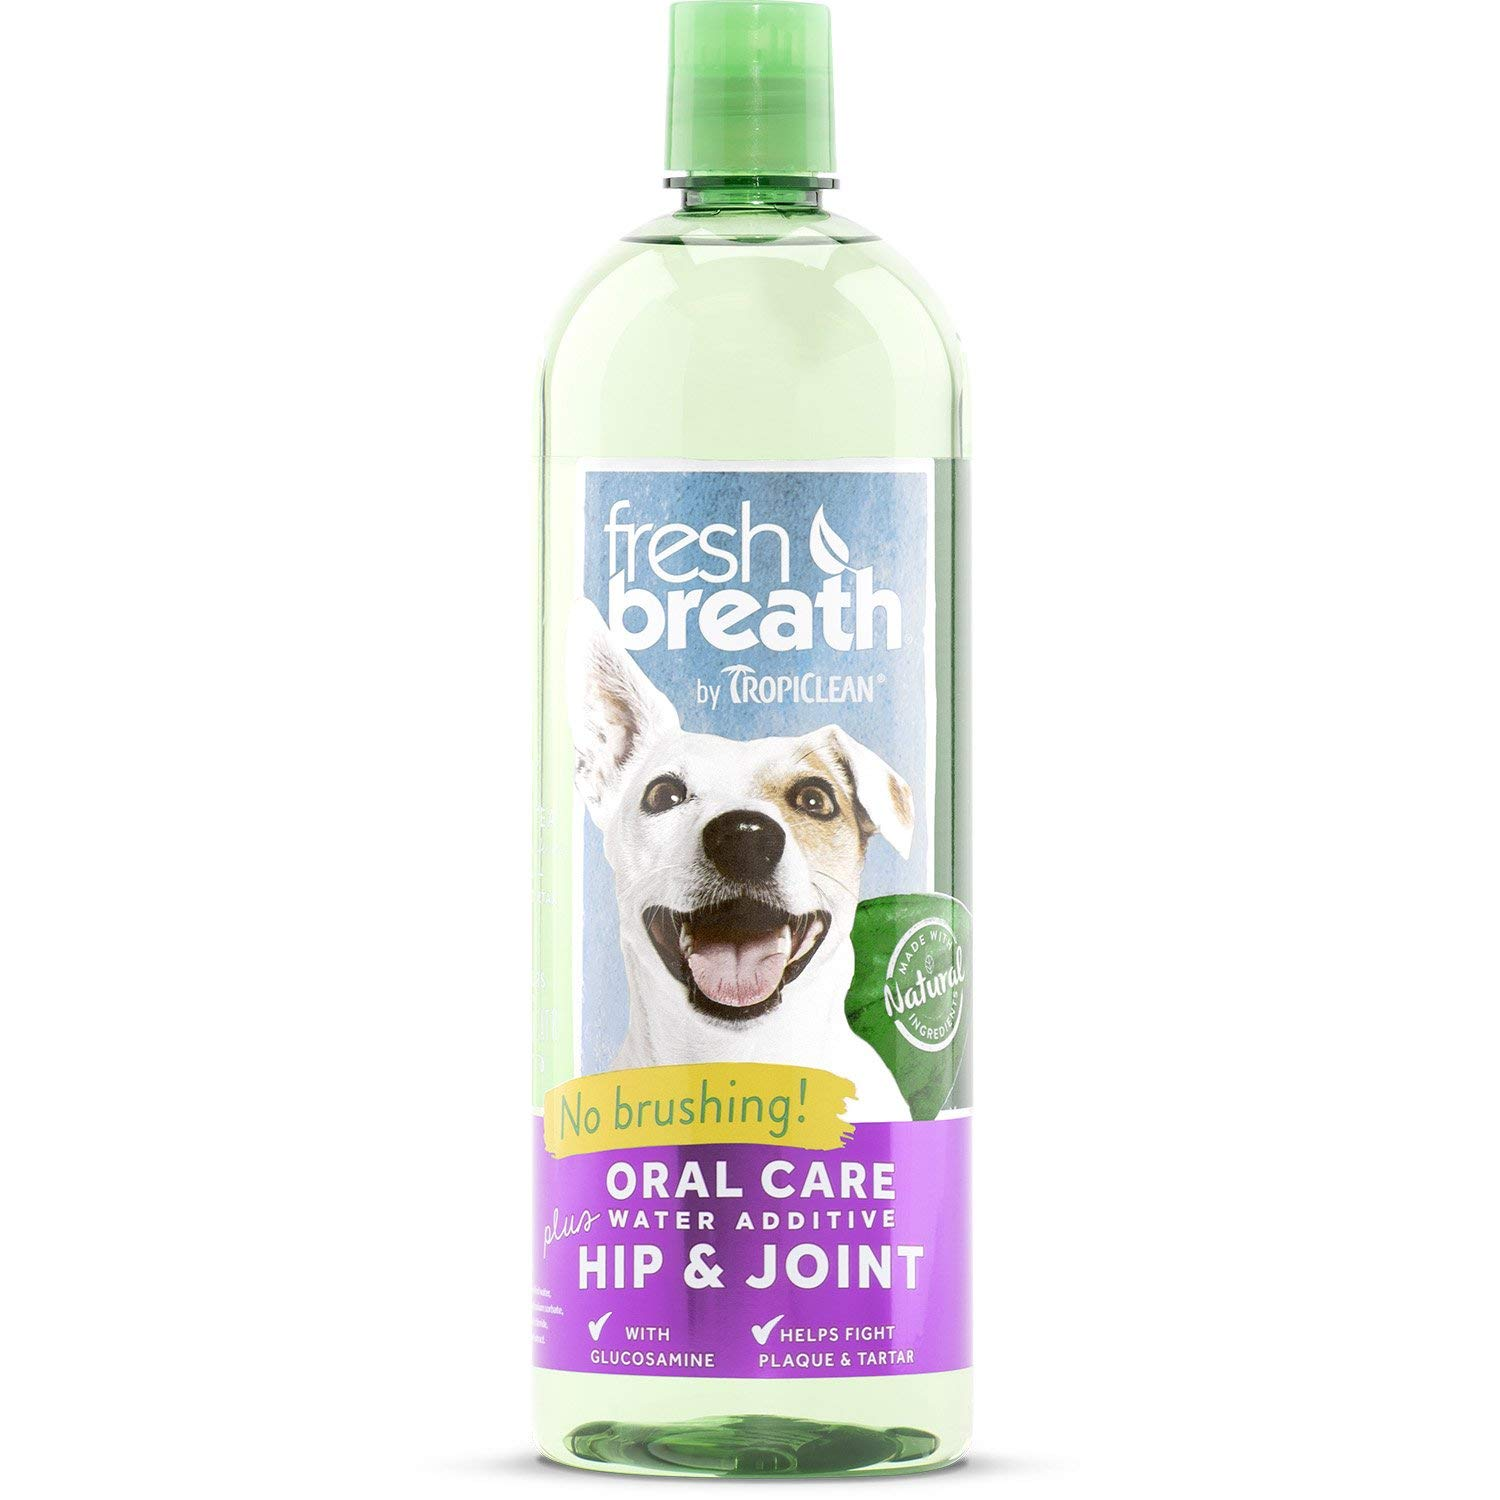 TropiClean Fresh Breath Plus Hip & Joint Oral Care Water Additive for Pets by Tropiclean